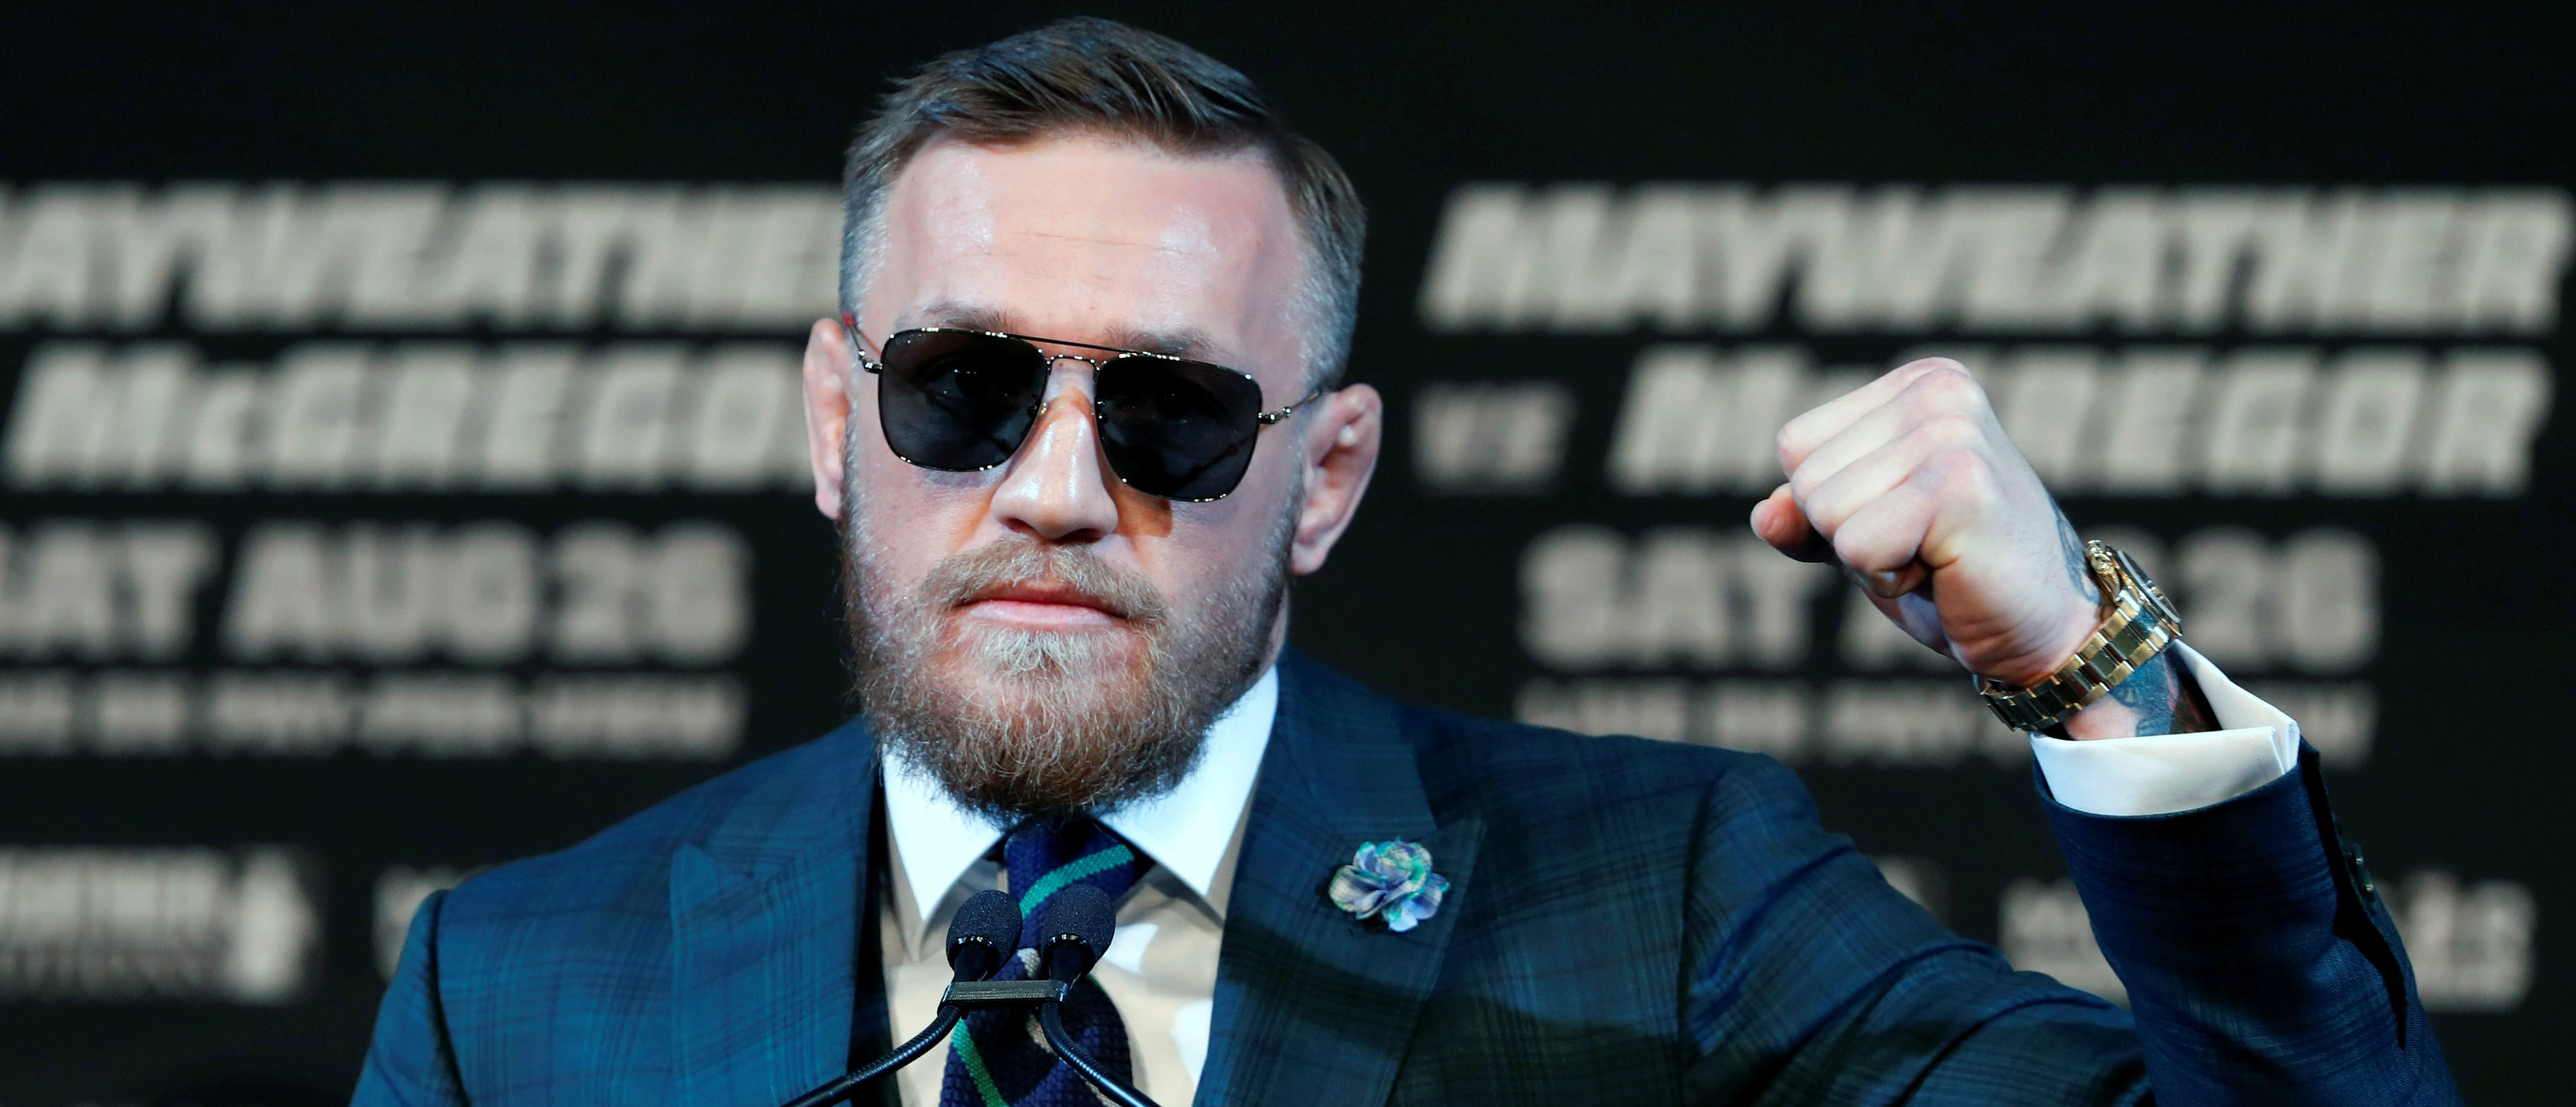 Conor McGregor of Ireland makes a fist during a news conference in Las Vegas, Nevada U.S. on August 23, 2017. REUTERS/Las Vegas Sun/Steve Marcus - RC1DE250DB00